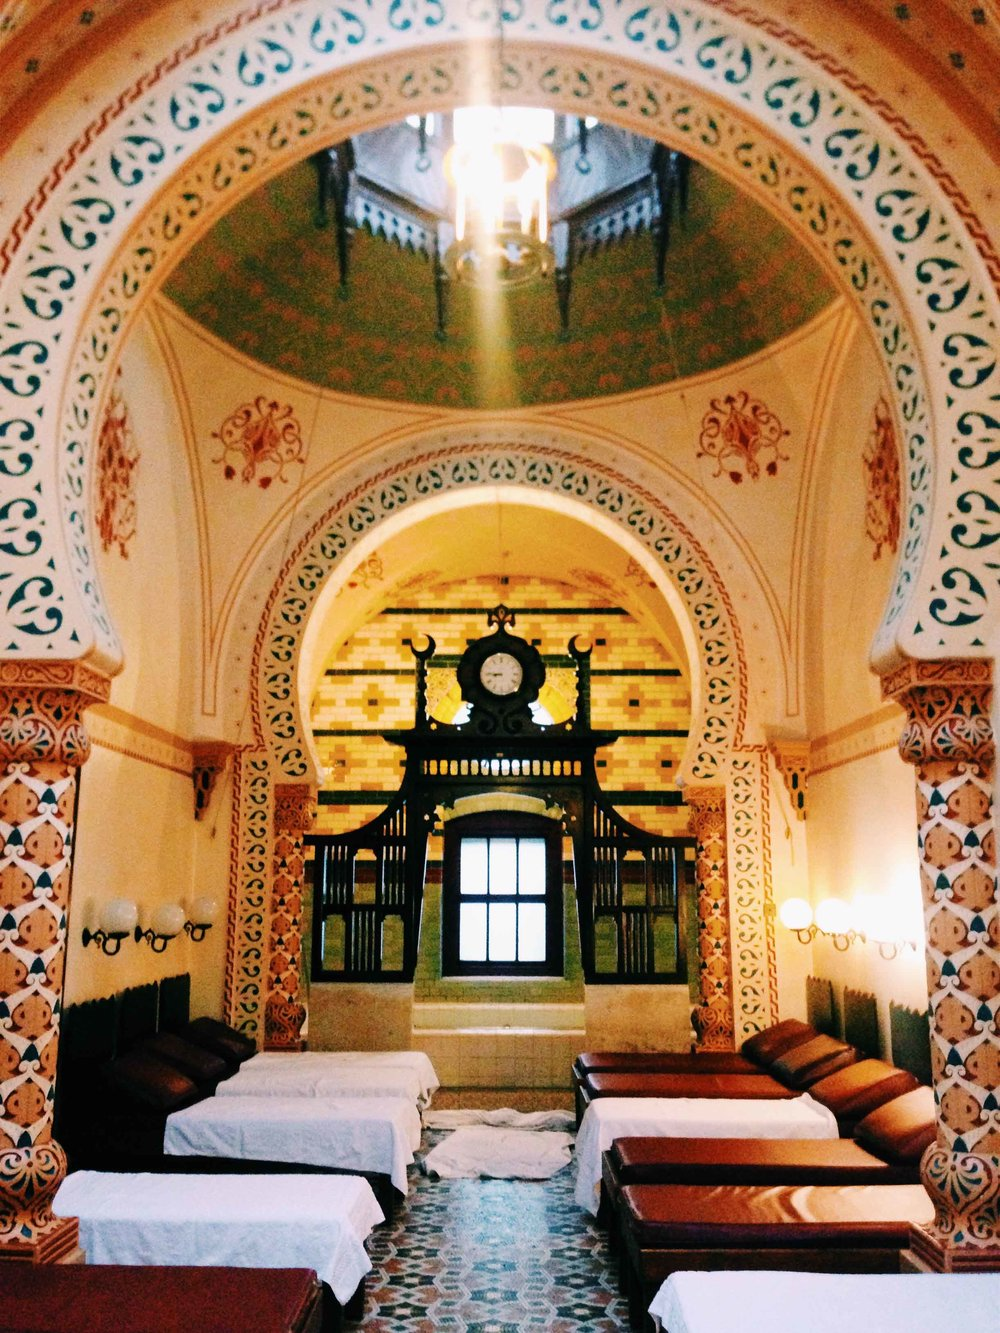 The ornate Turkish Baths in Harrogate, North Yorkshire, England.